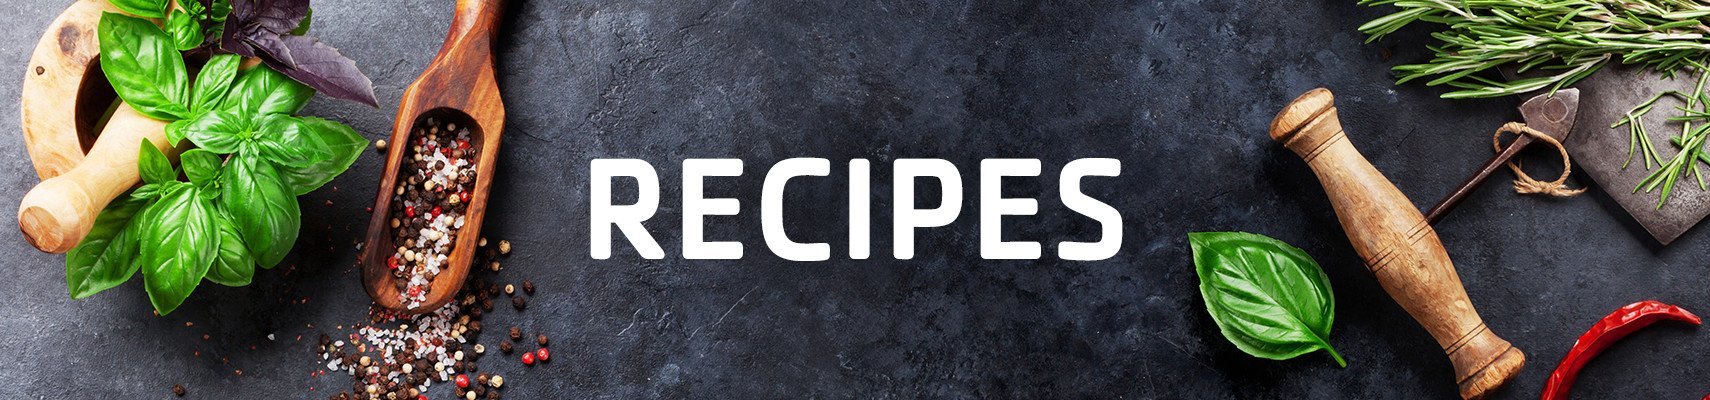 Recipe header image (1).jpg